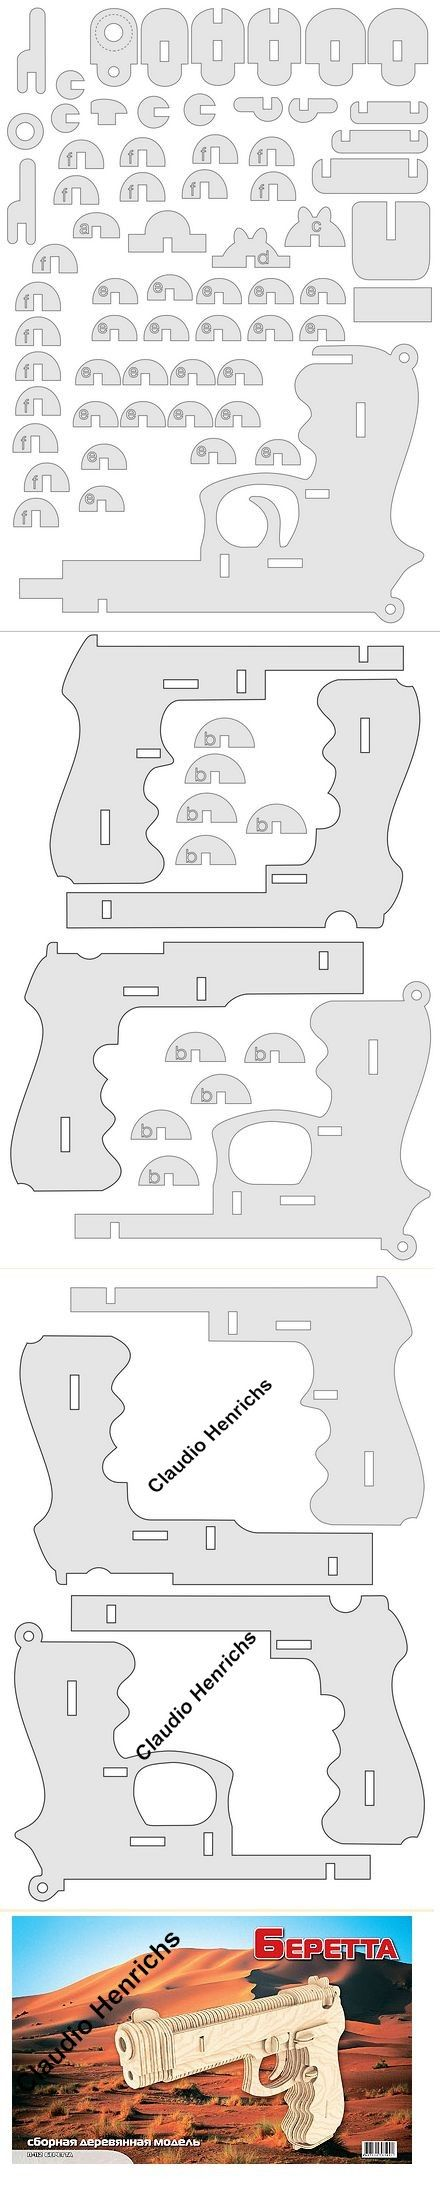 Pistol (With images) Hobbies and crafts, Laser engraving